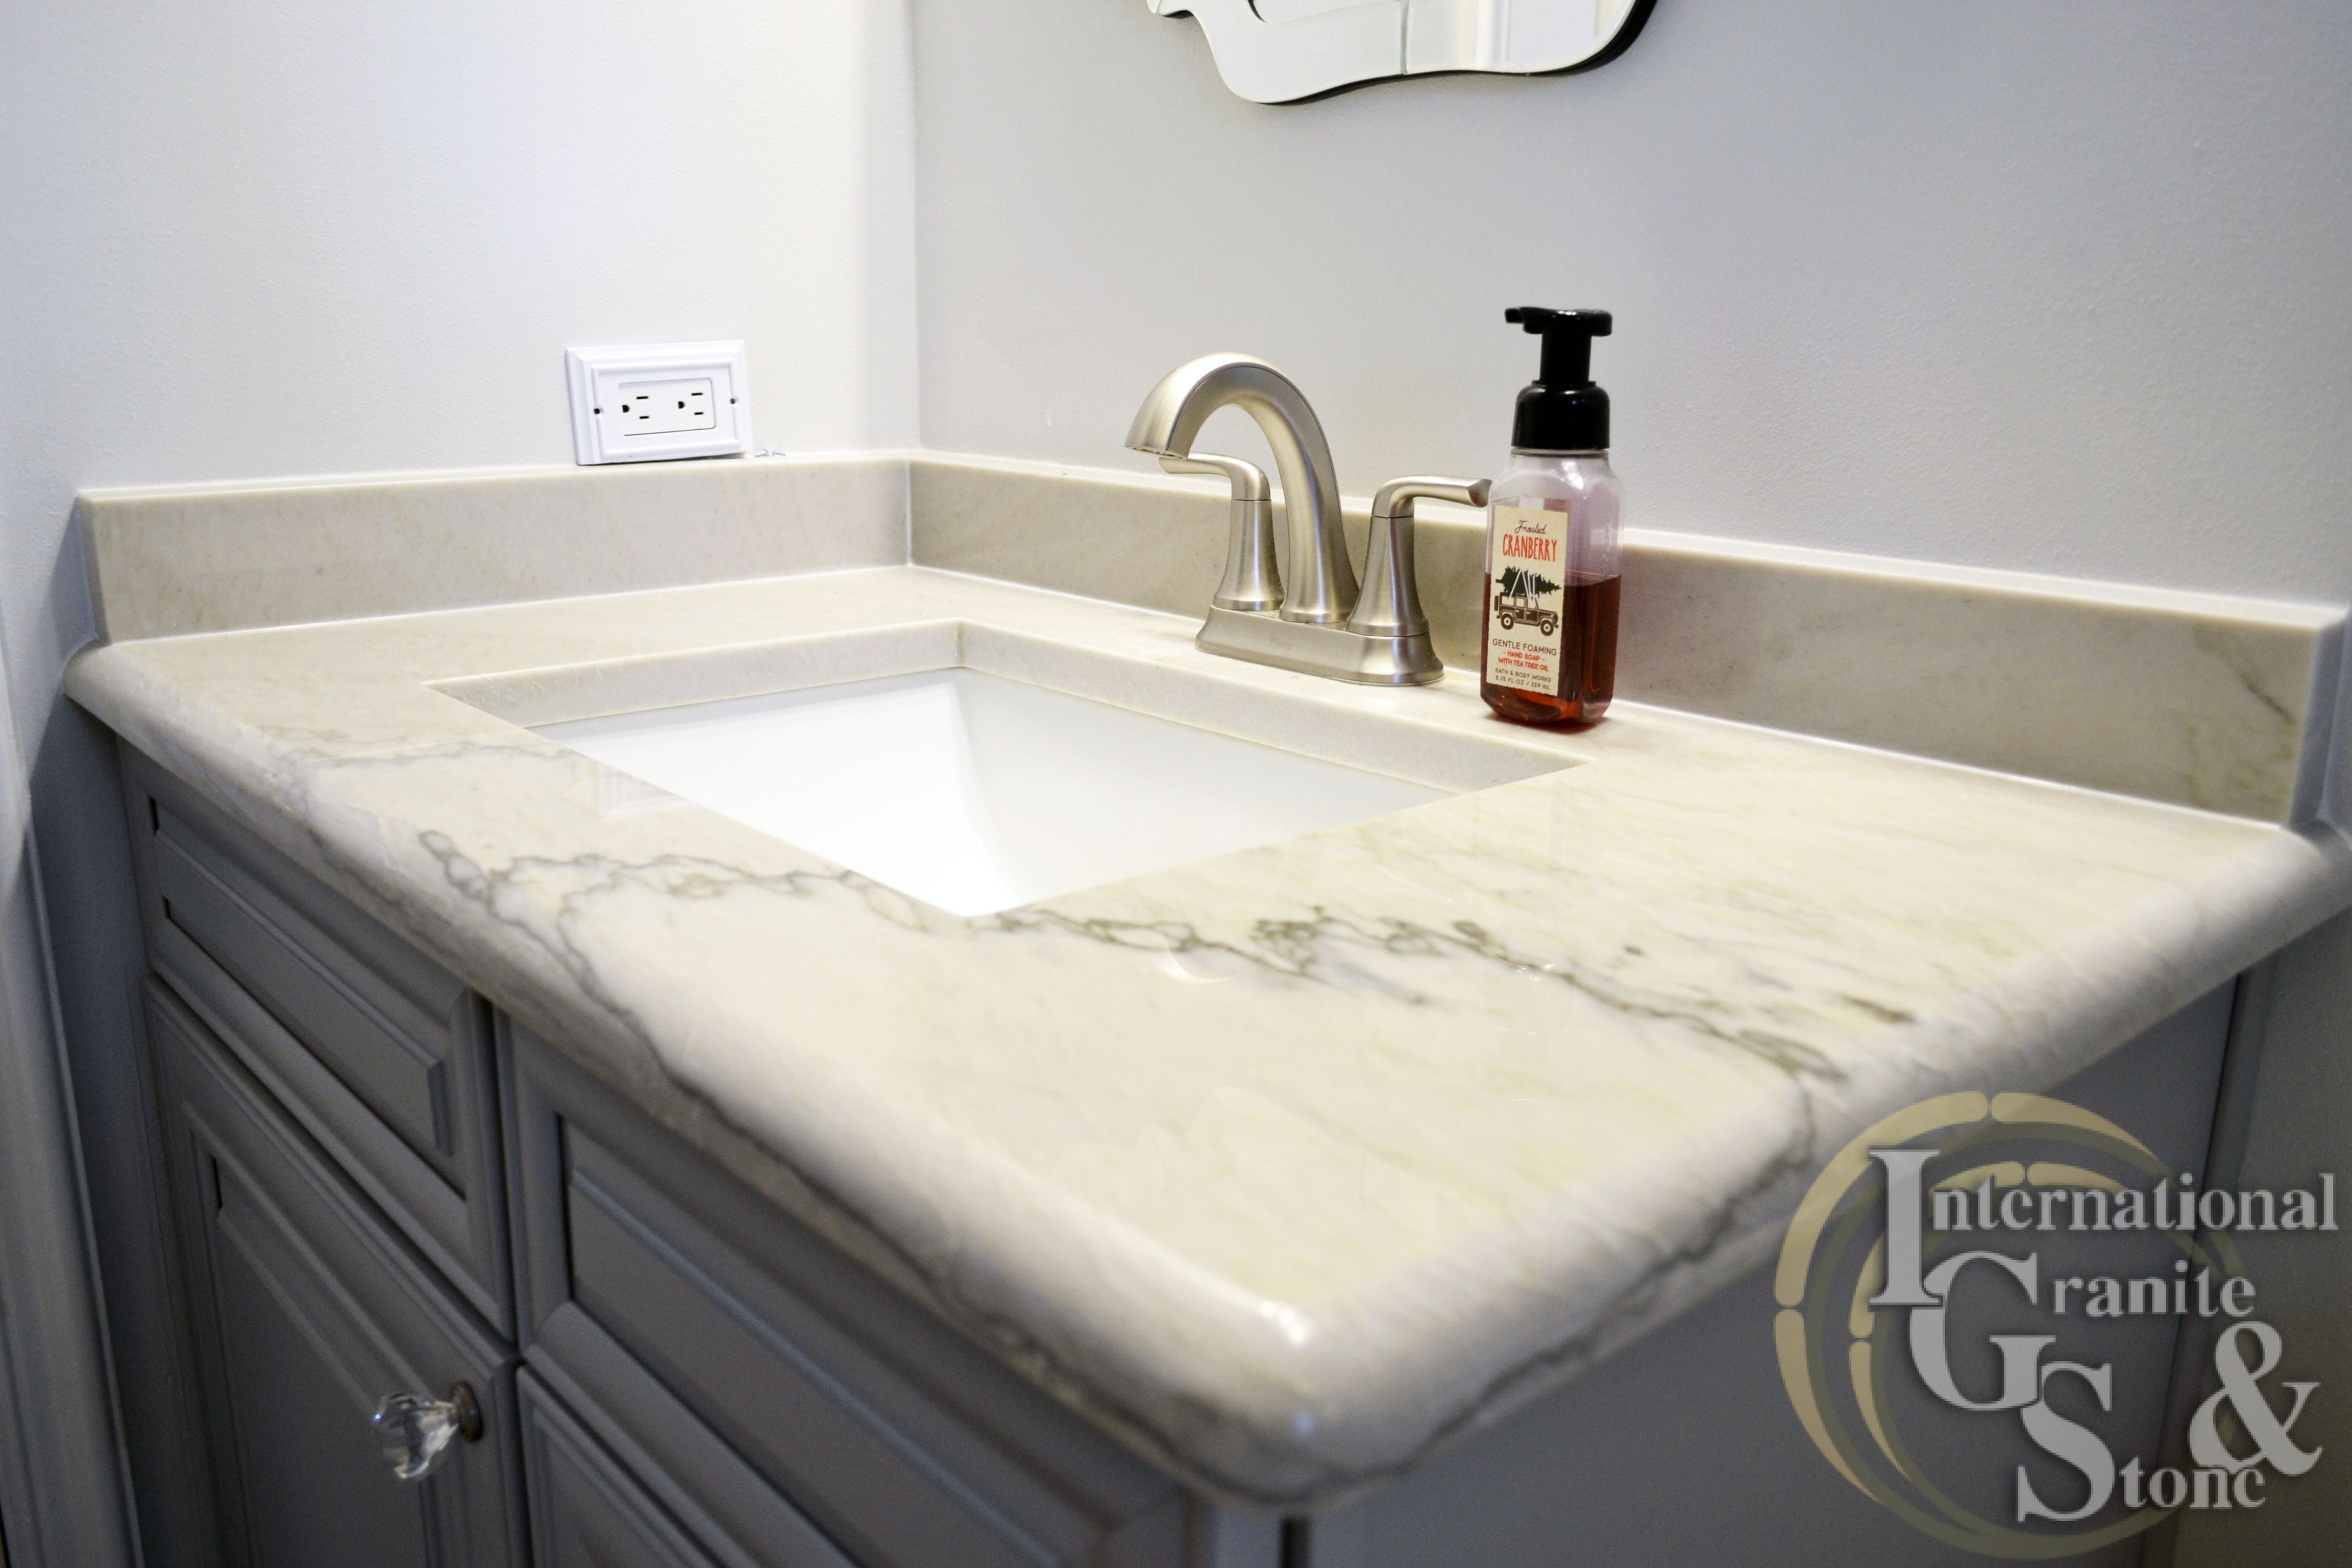 White Quartzite Bathroom Vanity Countertops In Fort Myers, Fl |  International Granite And Stone Cambria